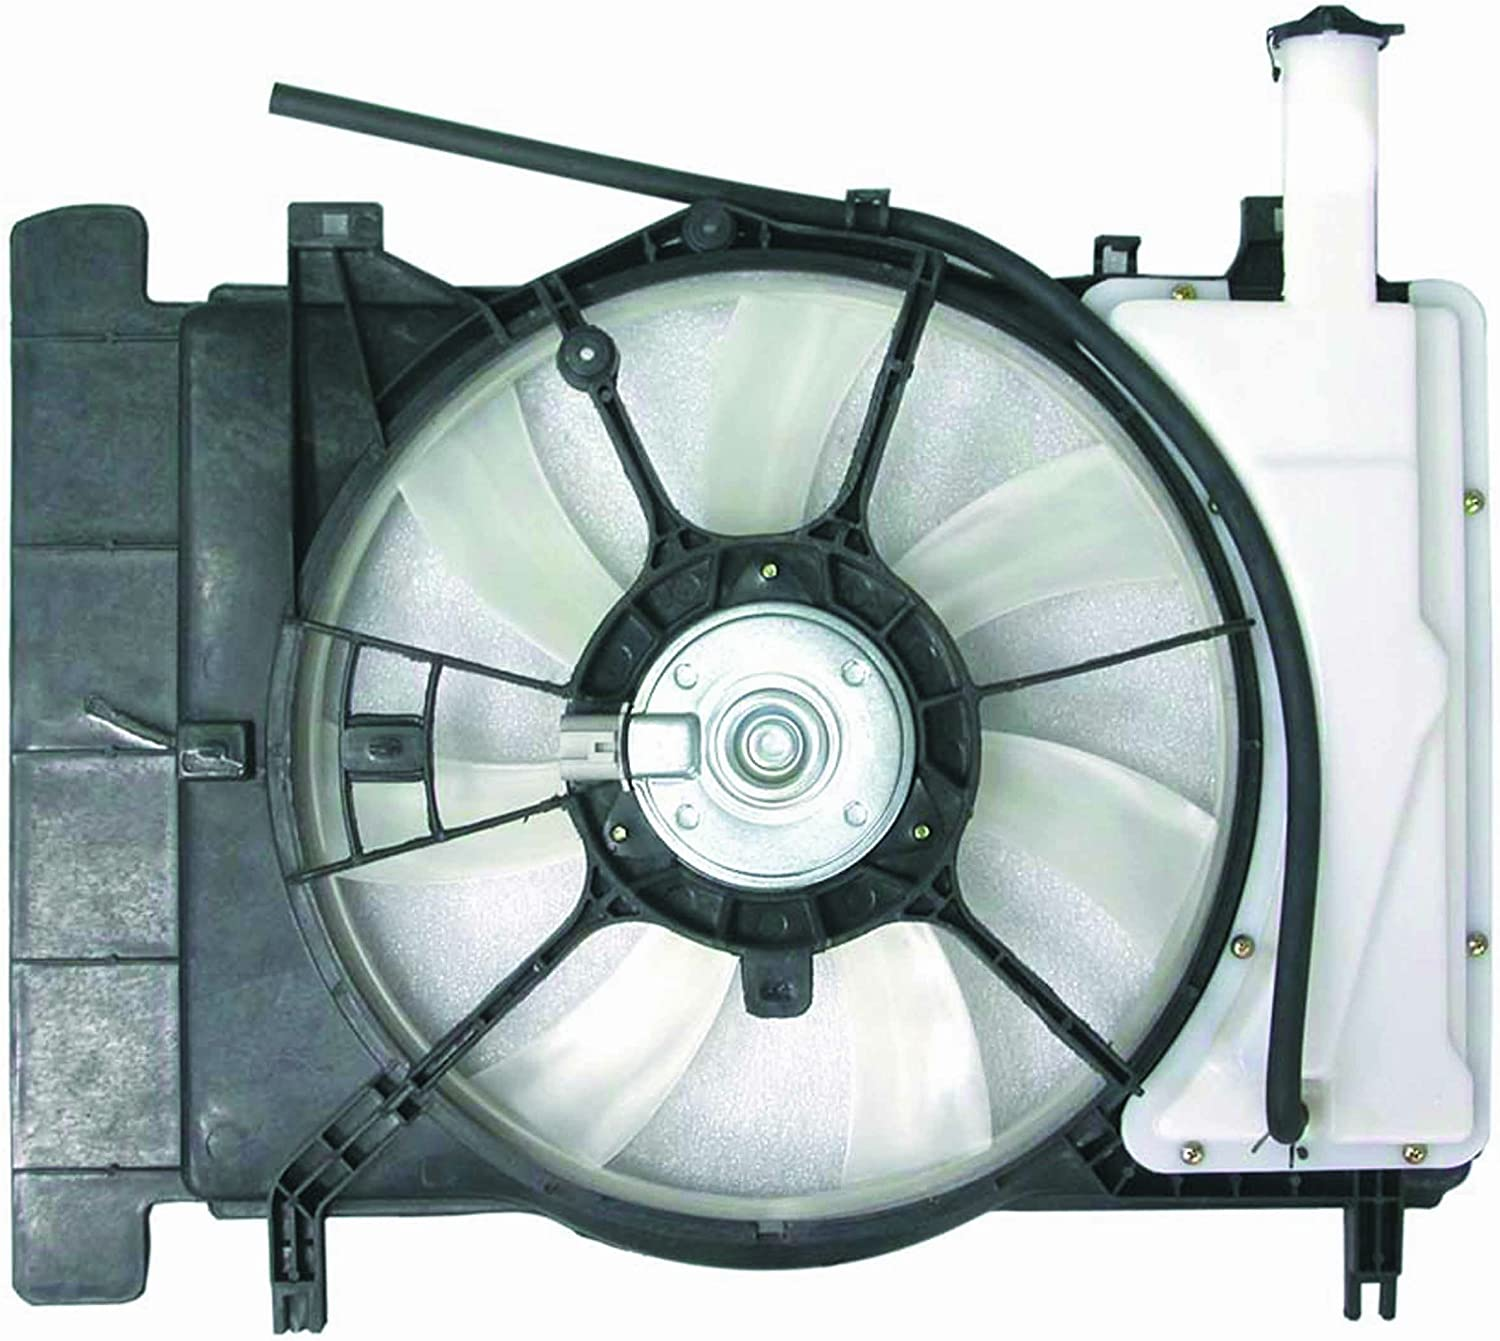 Popular brand DEPO 312-55042-000 Oakland Mall Replacement Engine Assembly Fan Cooling This